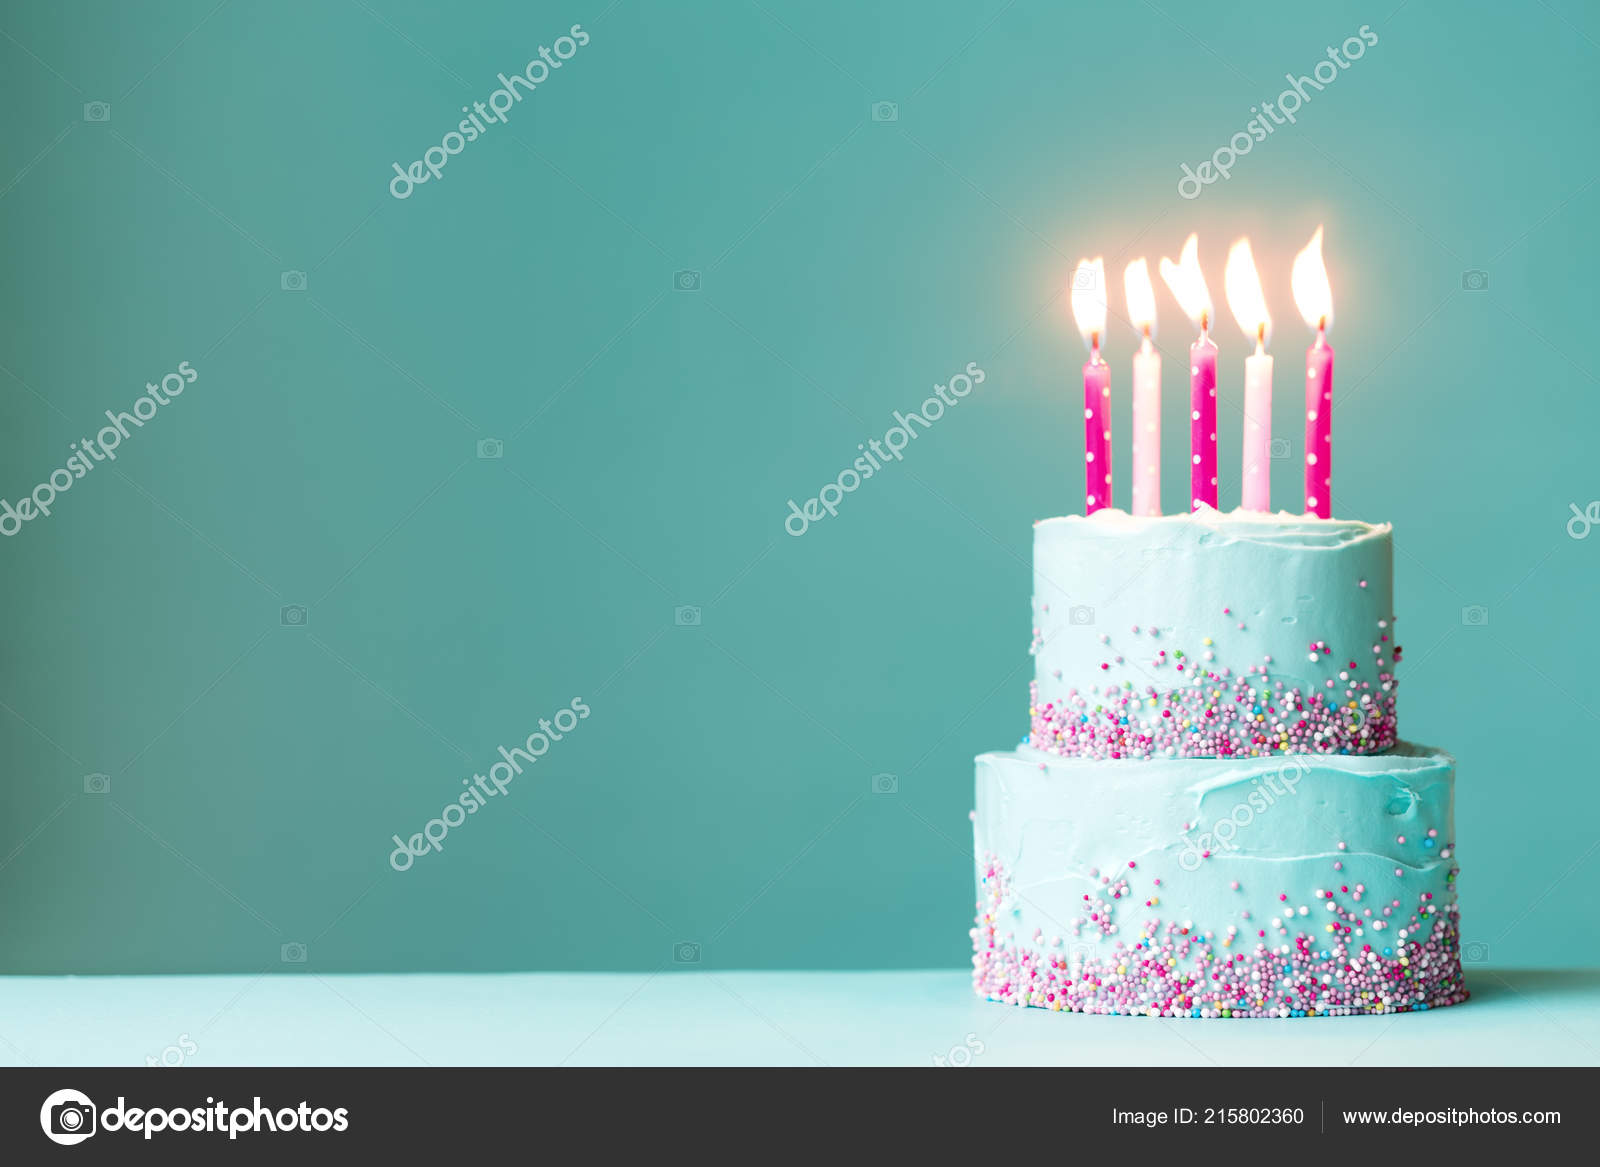 Tiered Birthday Cake Pink Candles Sprinkles Stock Photo